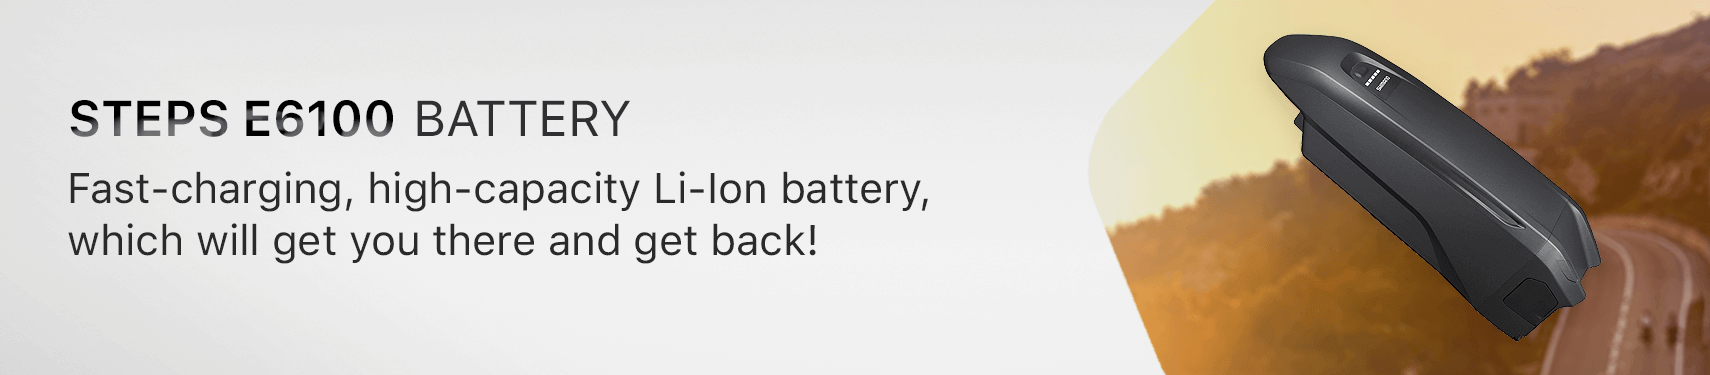 Fast-charging, high-capacity Li-Ion battery, which will get you there and get back!